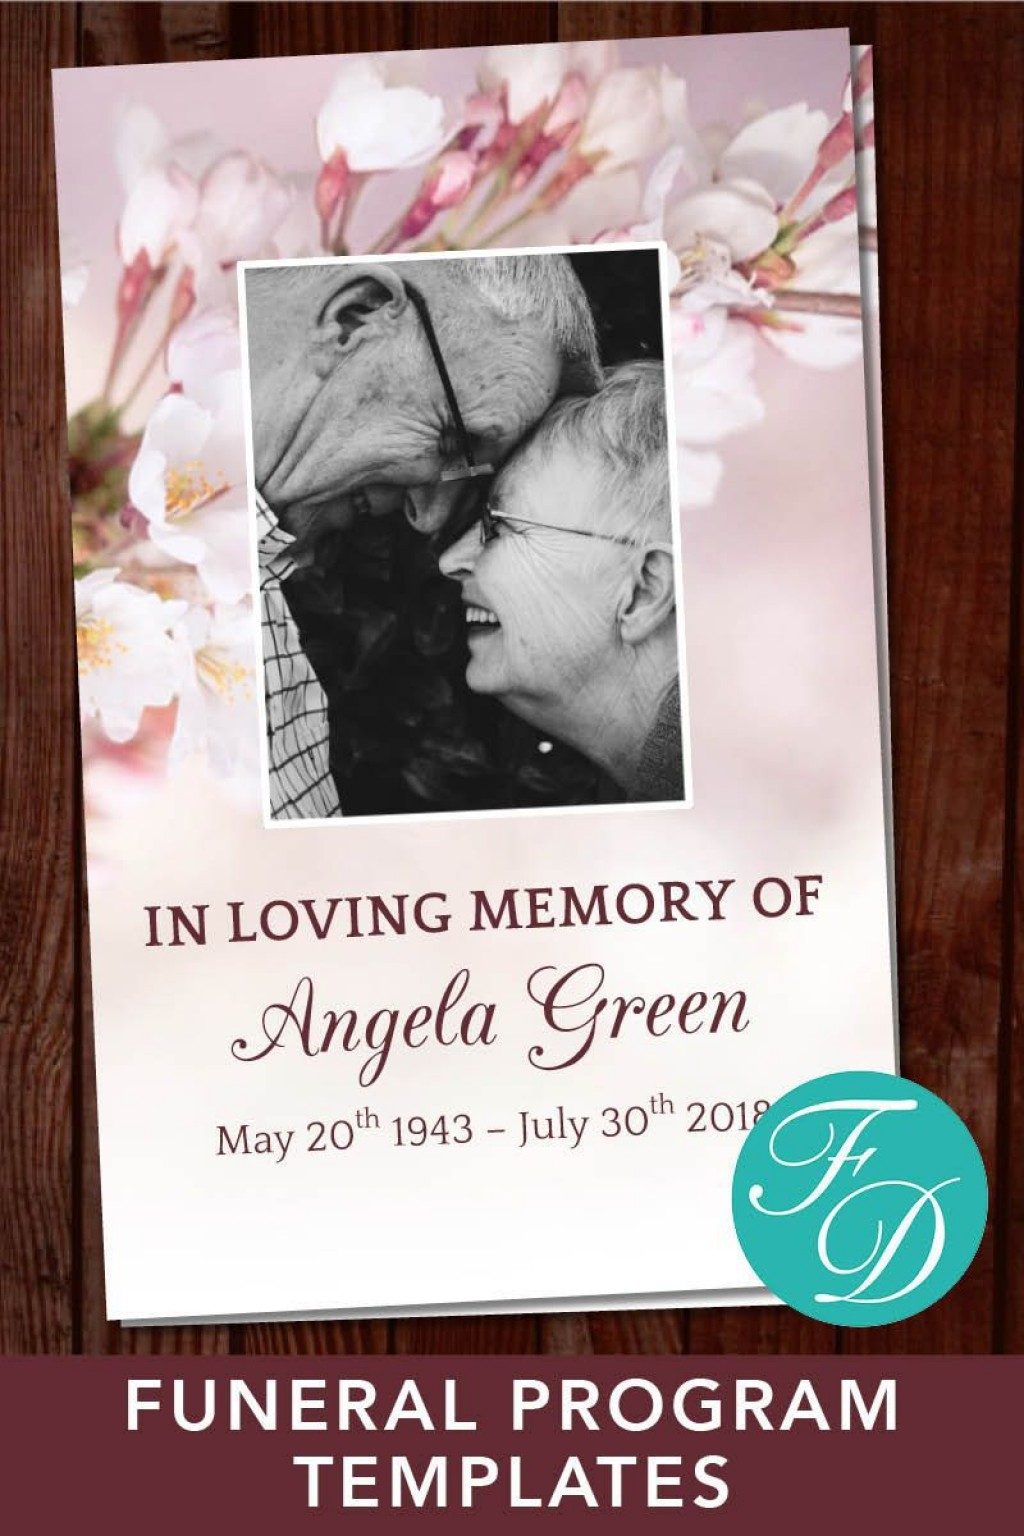 005 Shocking In Loving Memory Powerpoint Template Free Download High Definition Large